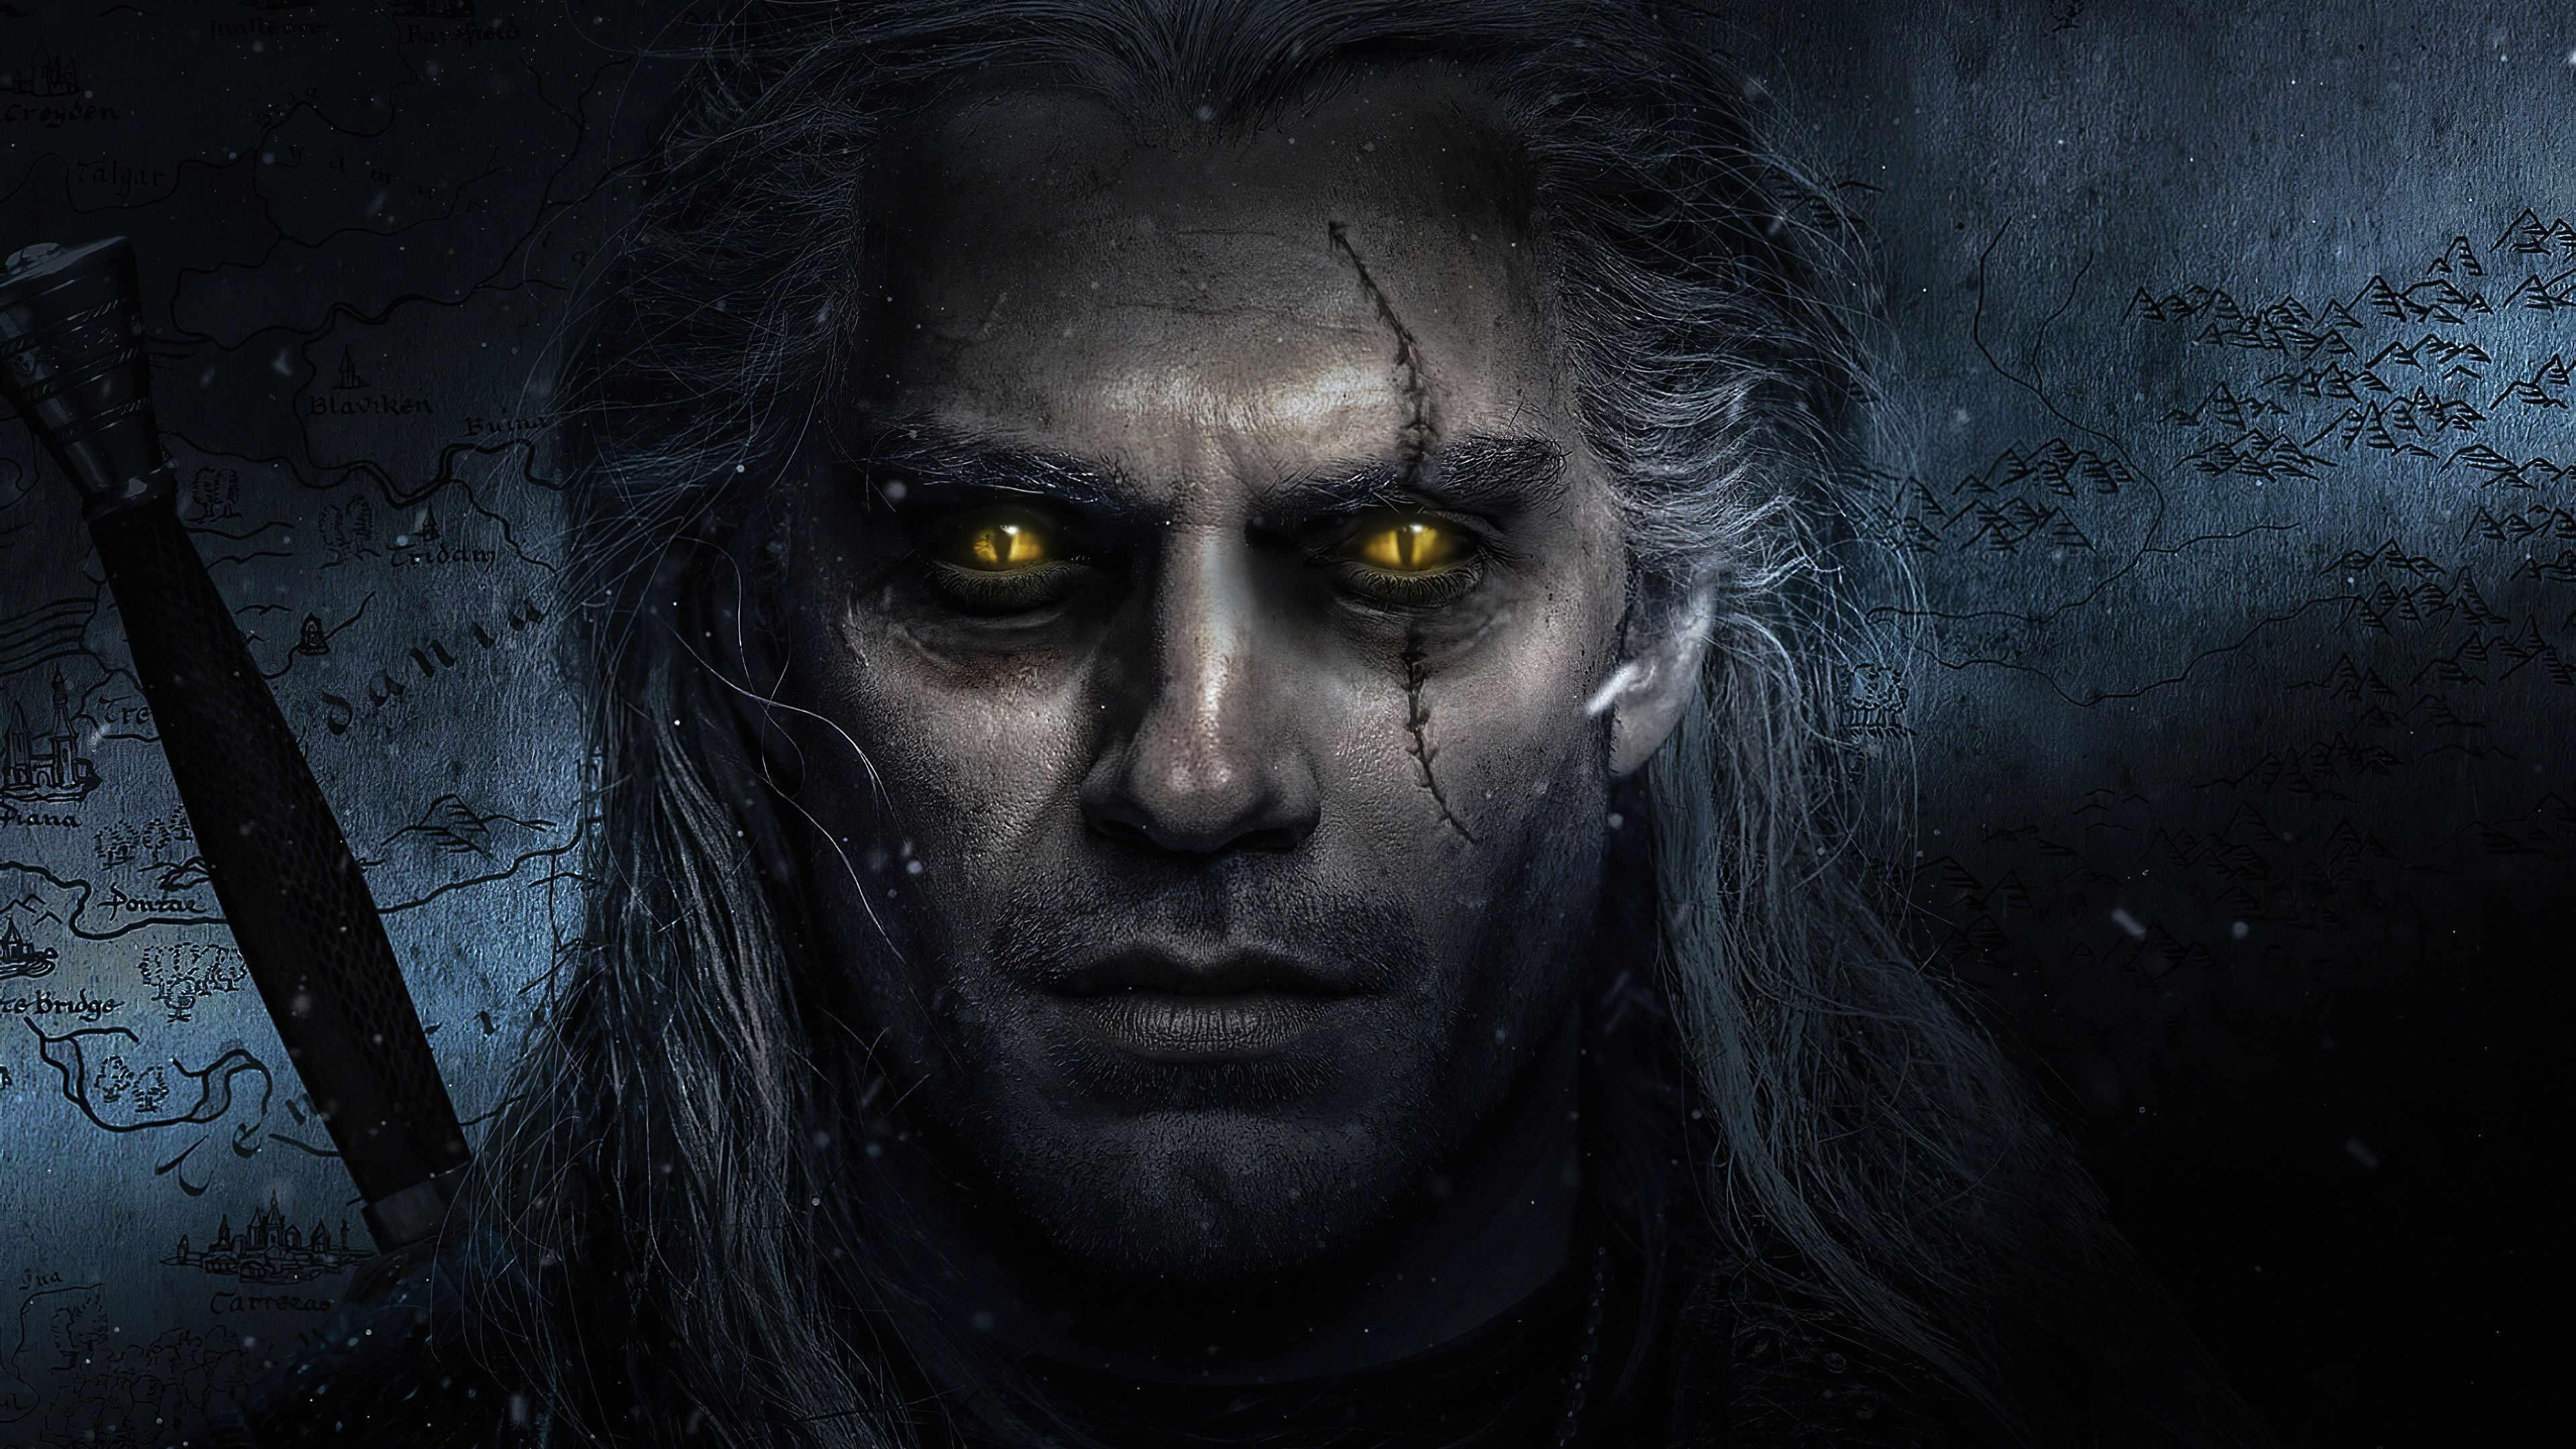 The Witcher Henry Cavill Art The Witcher Wallpaper Hd 4k The Witcher Henry Wallpaper 4k The Witcher 4k Wallpa In 2020 The Witcher The Witcher Geralt The Witcher Game